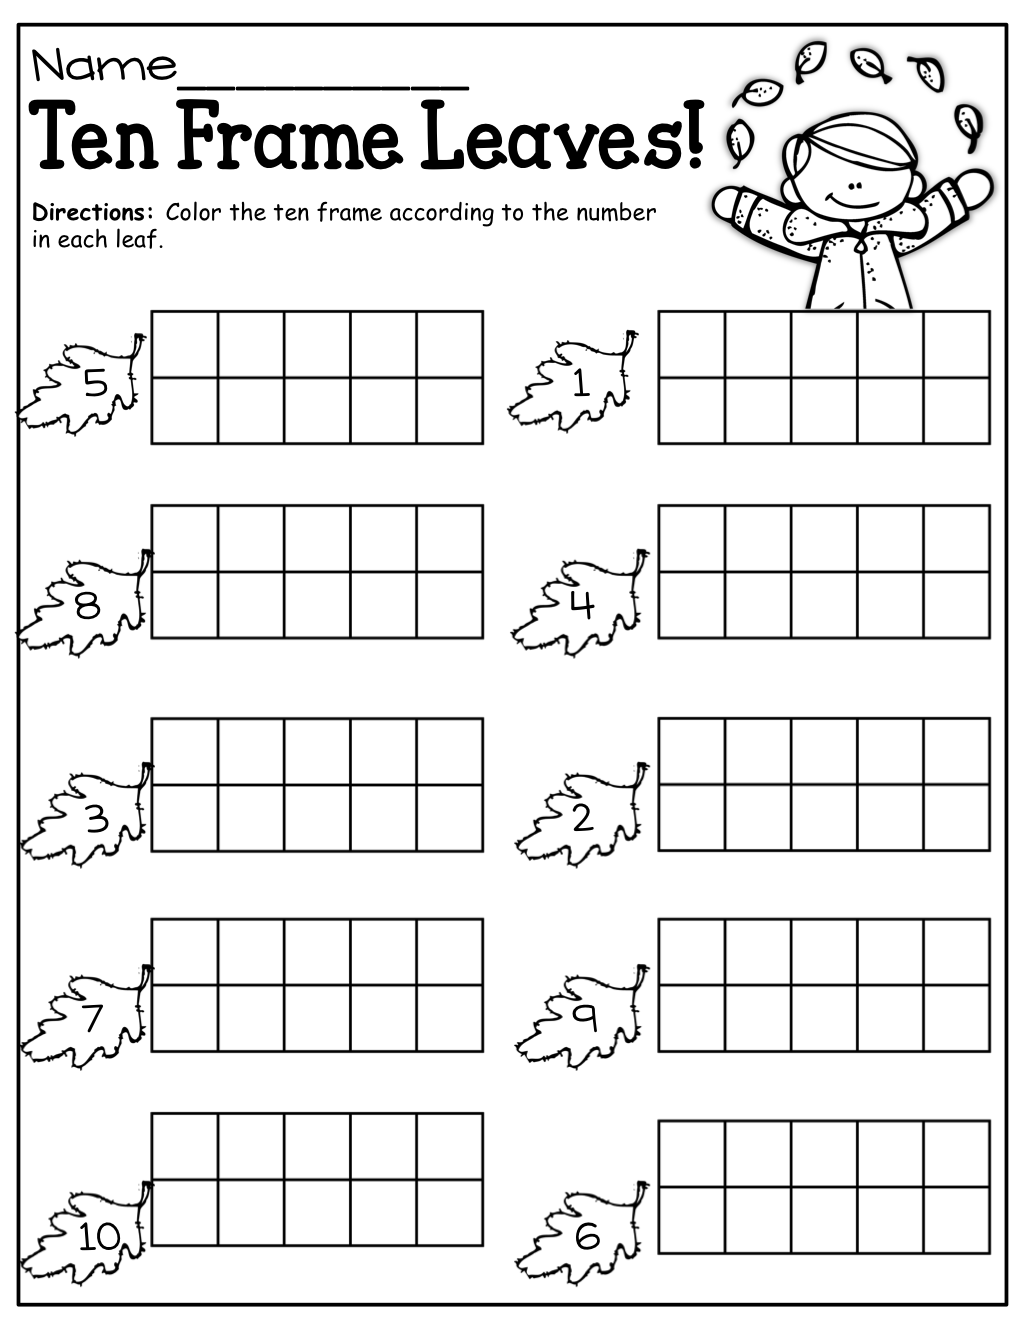 Fall Ten Frames Kindergarten Math Pinterest